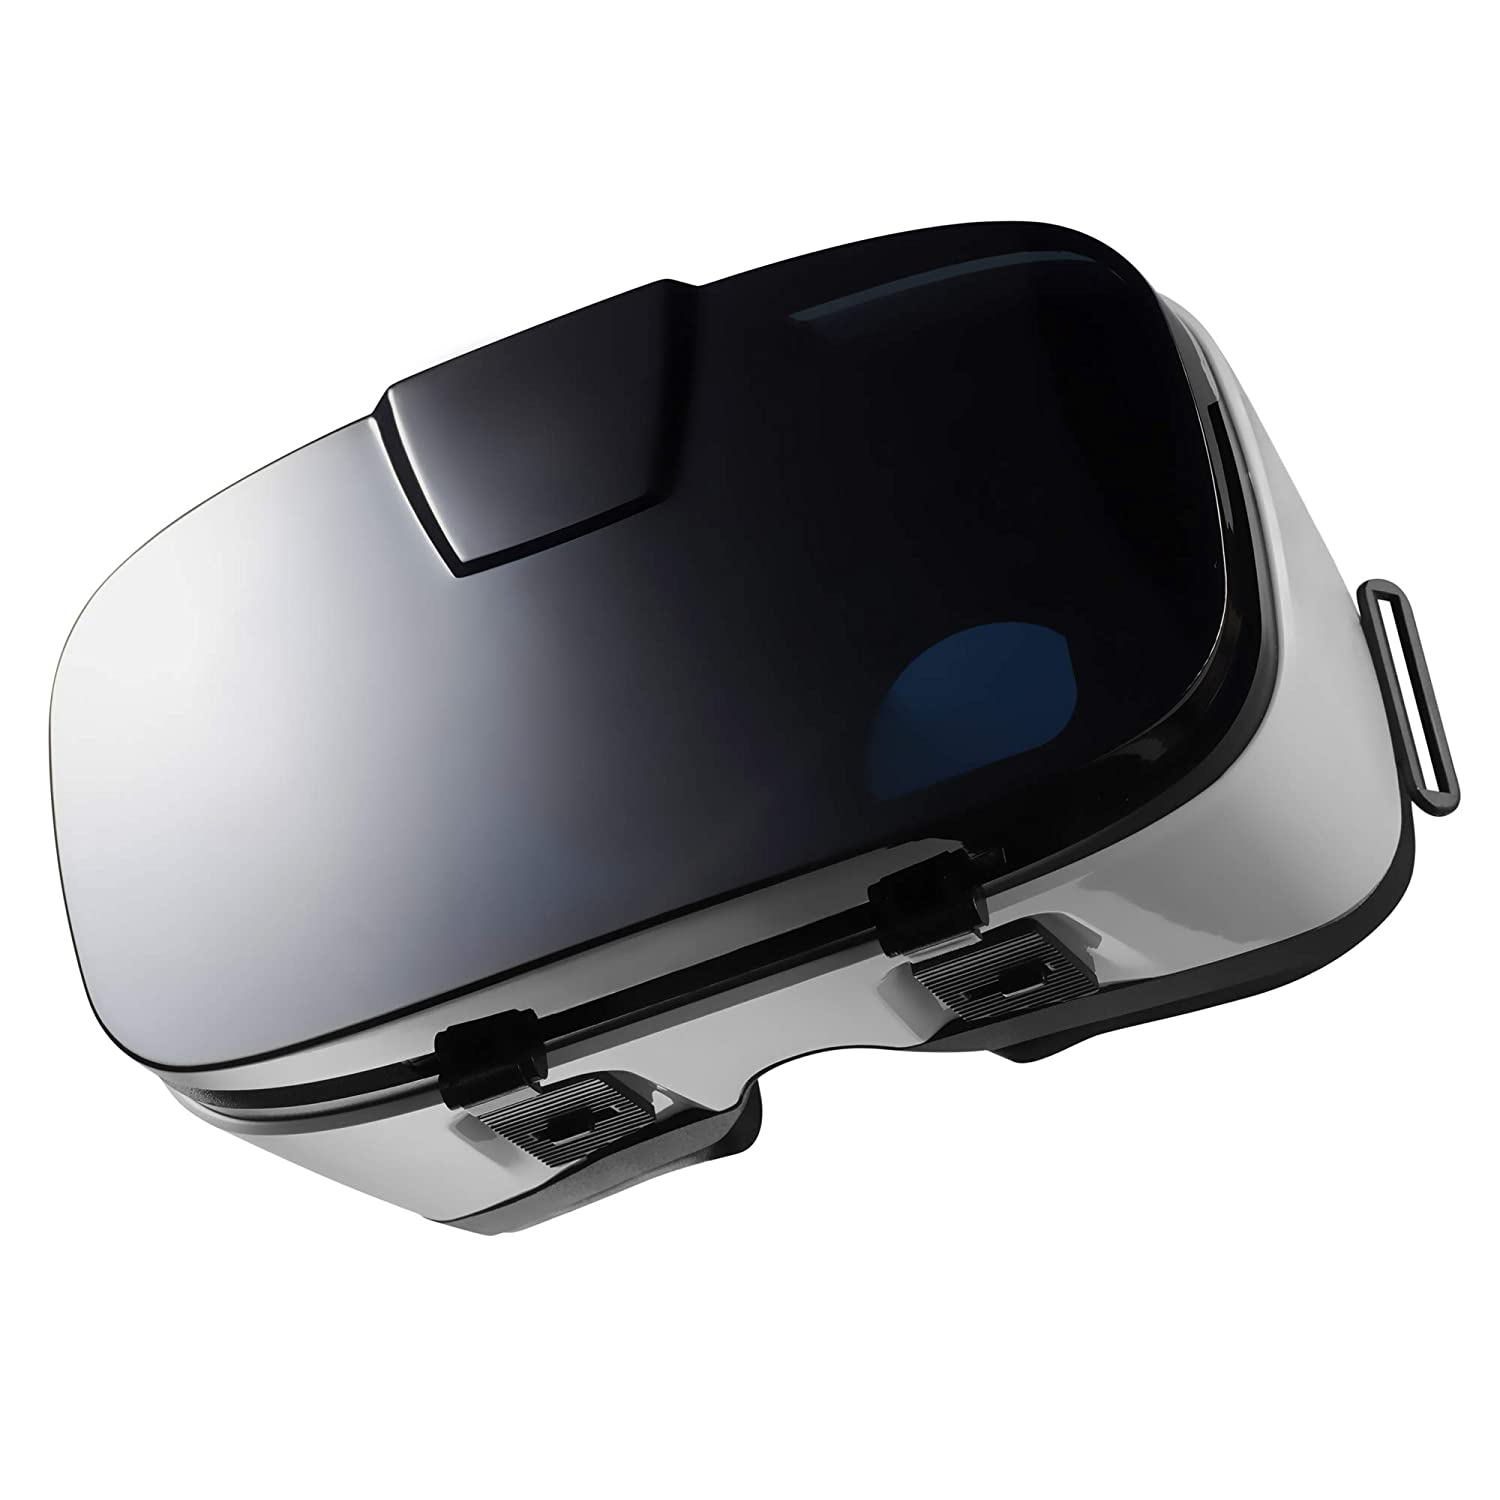 cc3c91235ad3e Amazon.com  Virtual Reality Goggles for iPhone and Android Phone ...